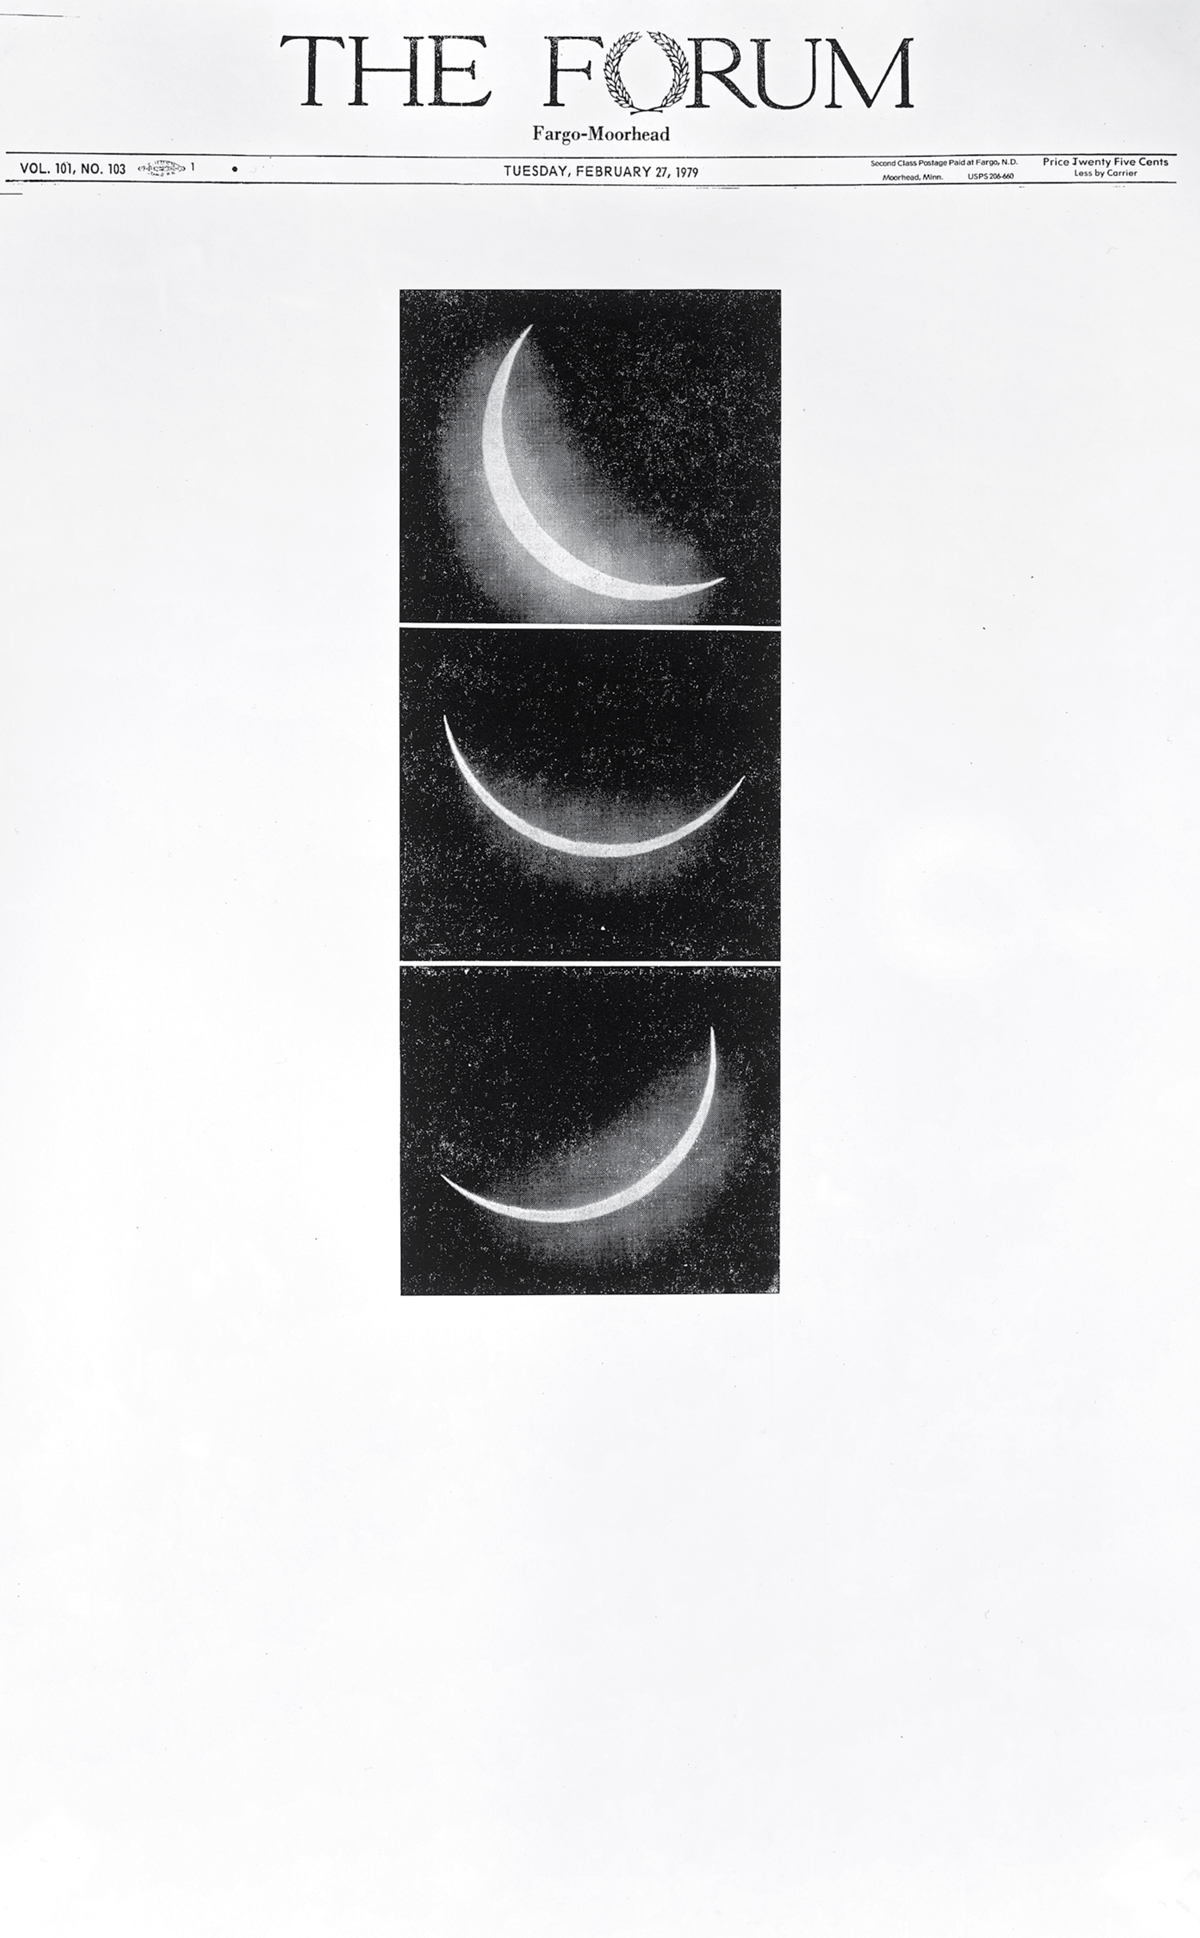 Sarah Charlesworth, 'Arc of Total Eclipse, February 26, 1979' (detail), 1979/2010.